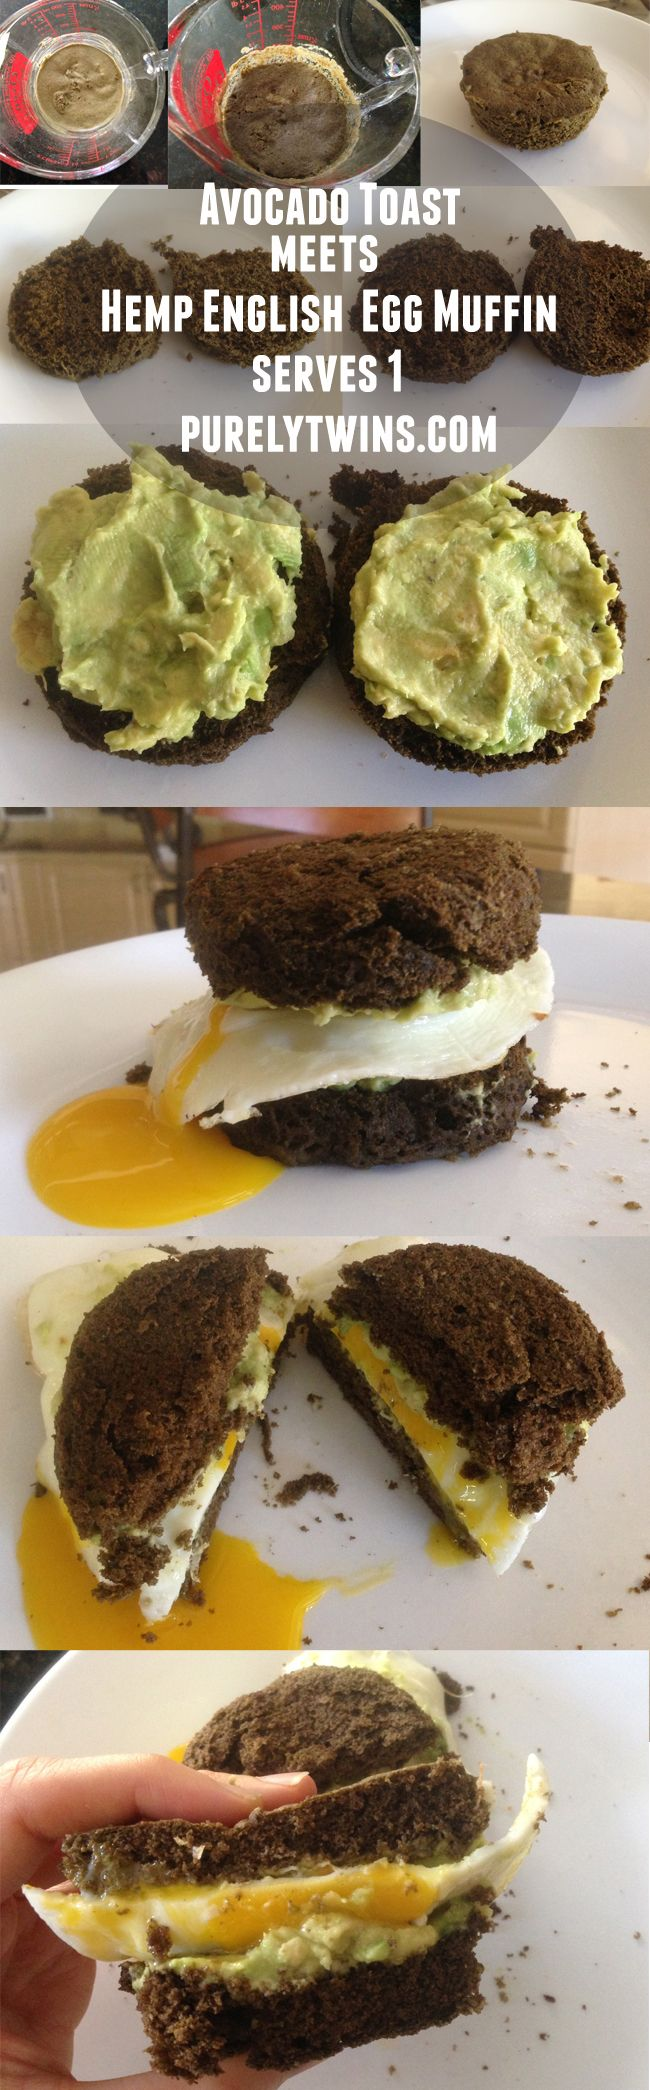 making hemp protein english muffin avocado egg sandwich